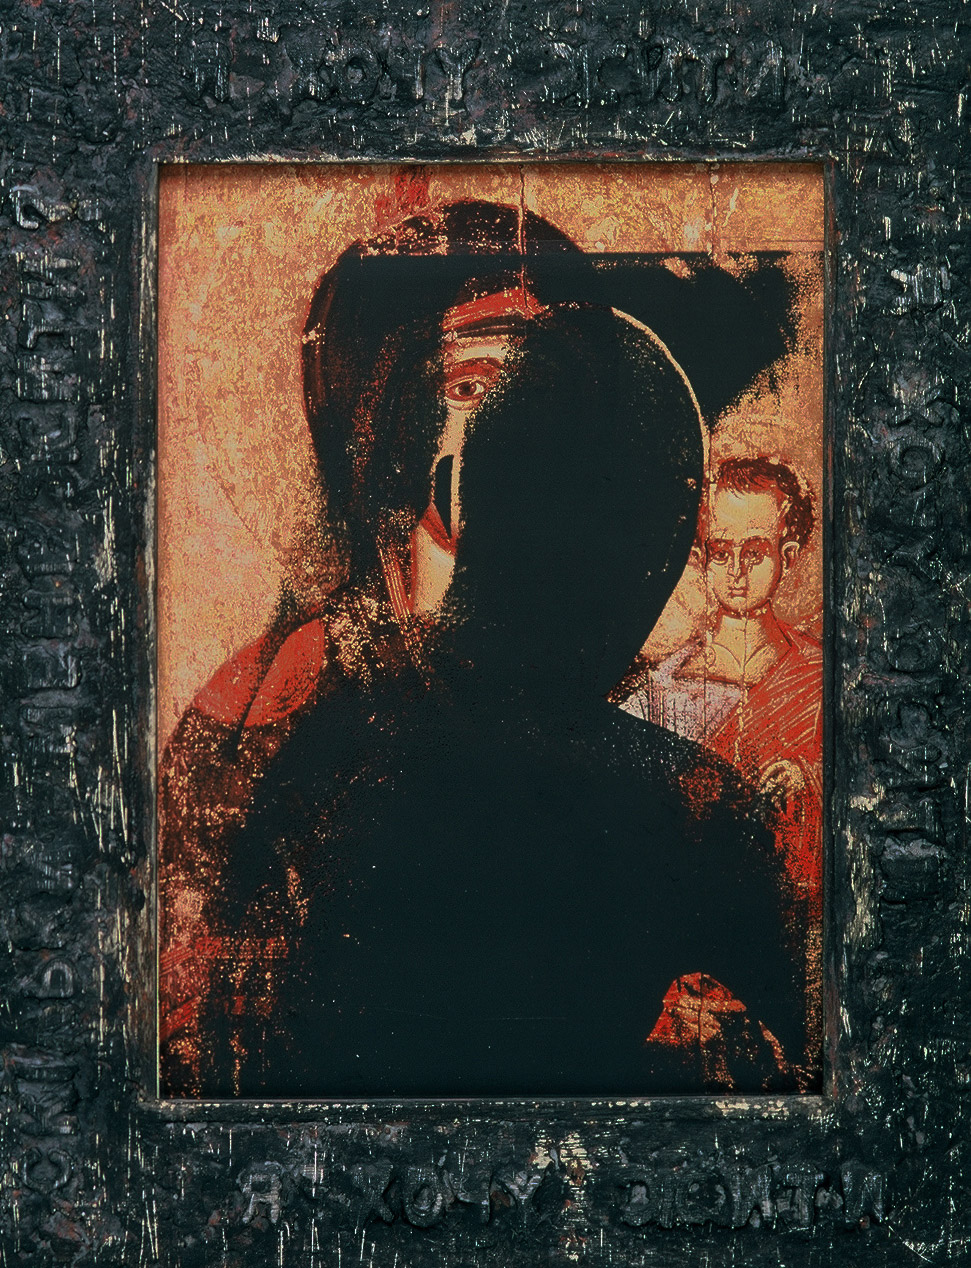 5ag(0) - Another Kind of Icon #12, wax, oil, photocopy, charred wood, 13x10 in. ,1997.jpg